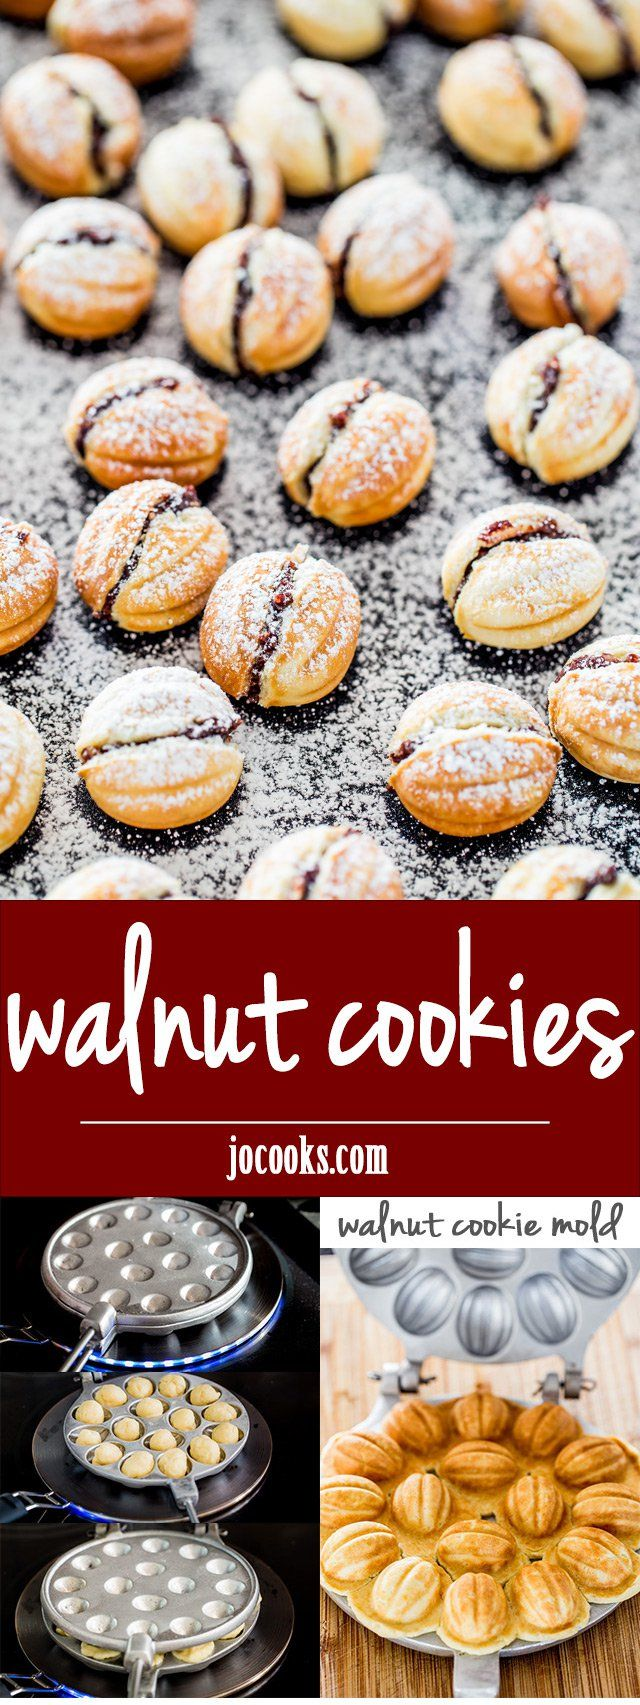 Walnut Cookies - walnut shaped cookies filled with a delicious walnut and Nutella filling. Festive, delicious and so adorable.